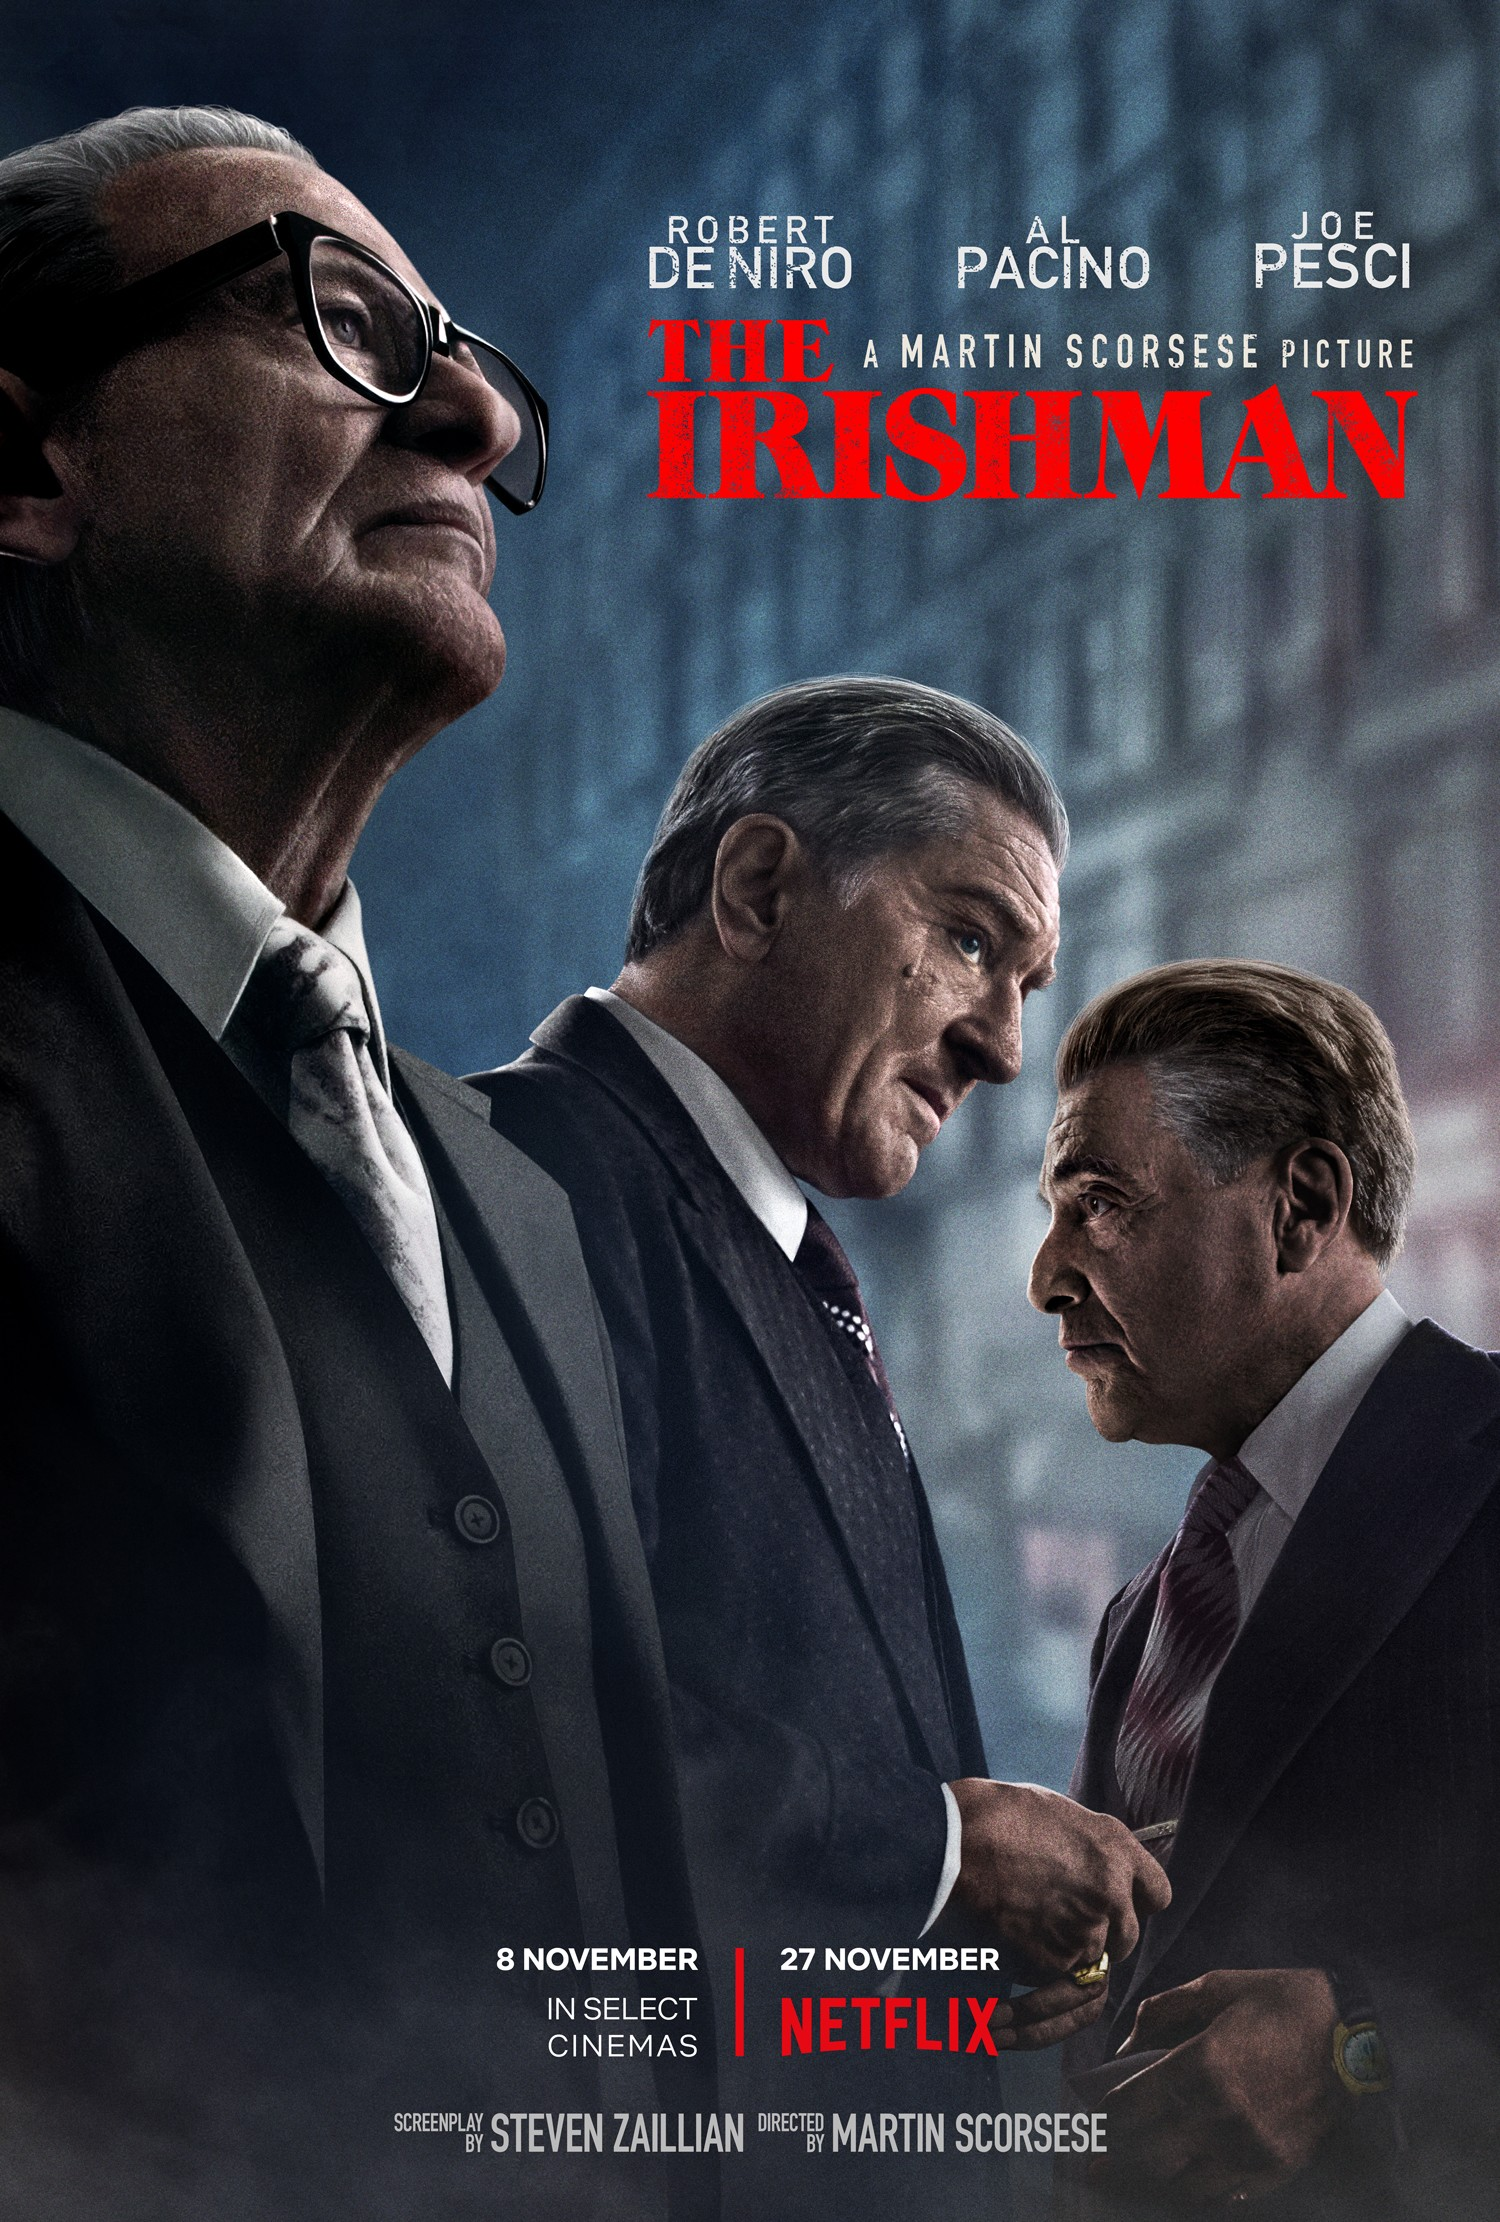 Martin Scorsese's THE IRISHMAN